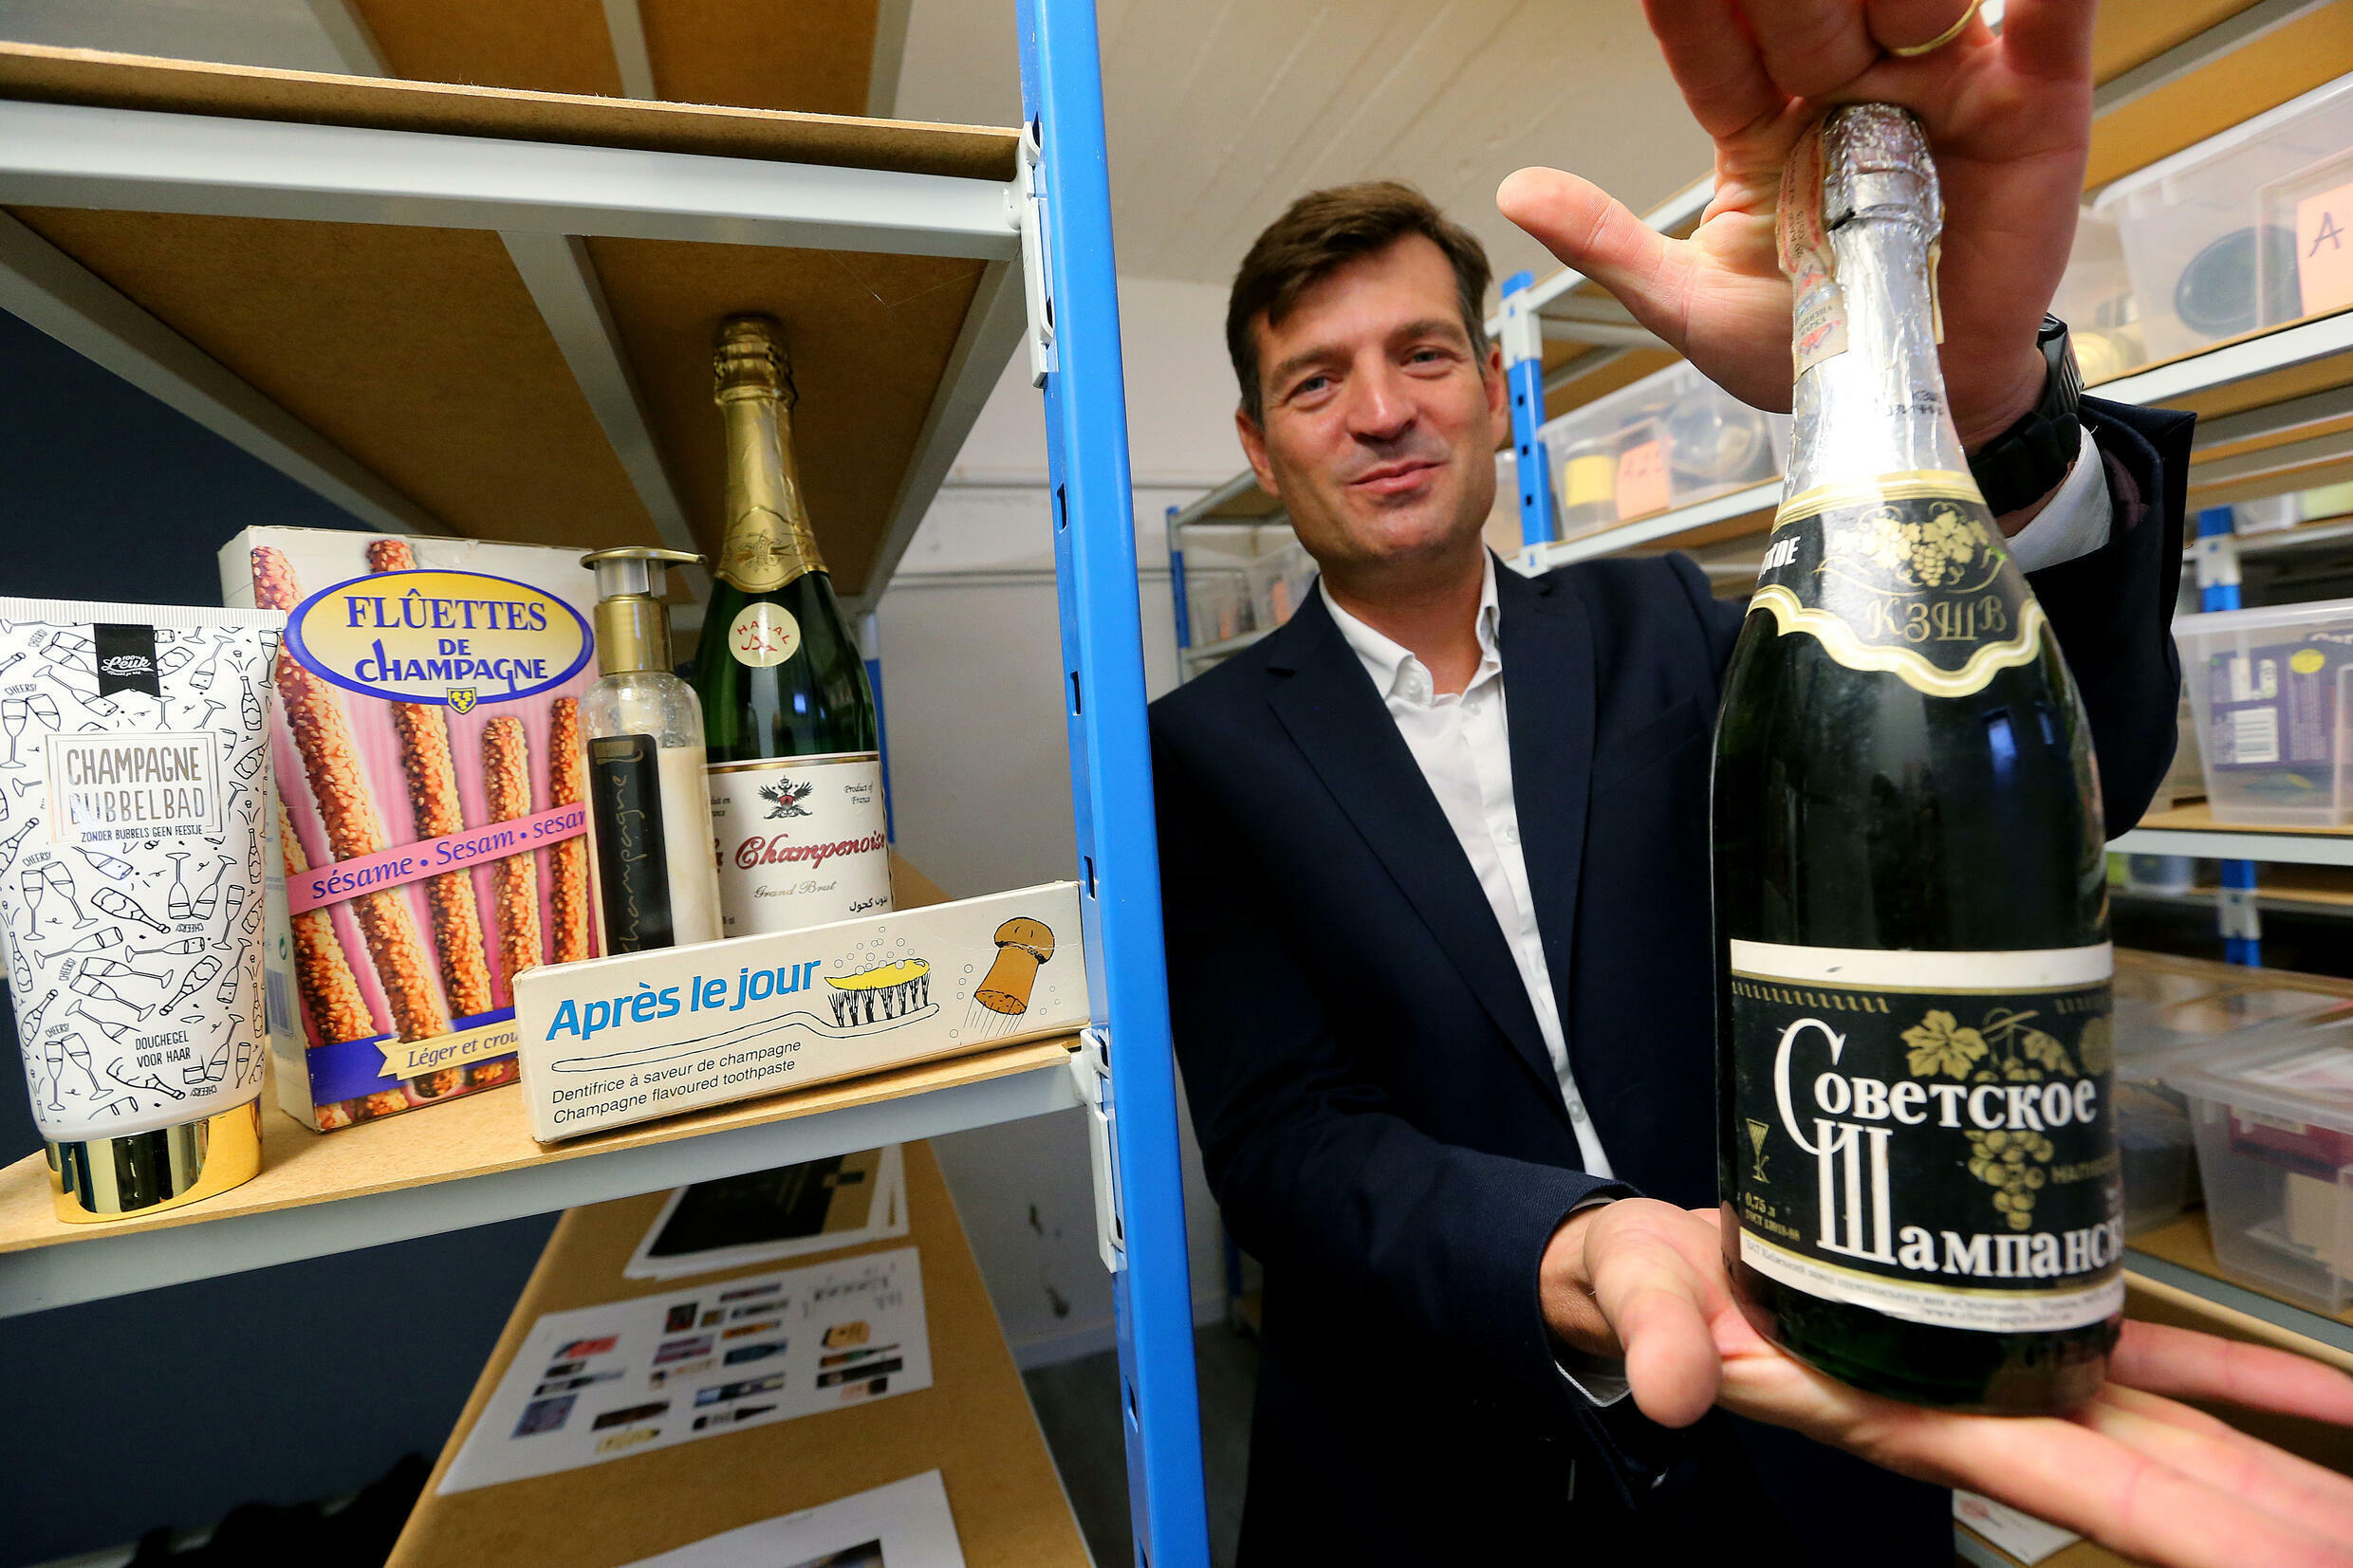 CIVC boss Charles Goemaere shows Russian sparkling wine which has hijacked the champagne name